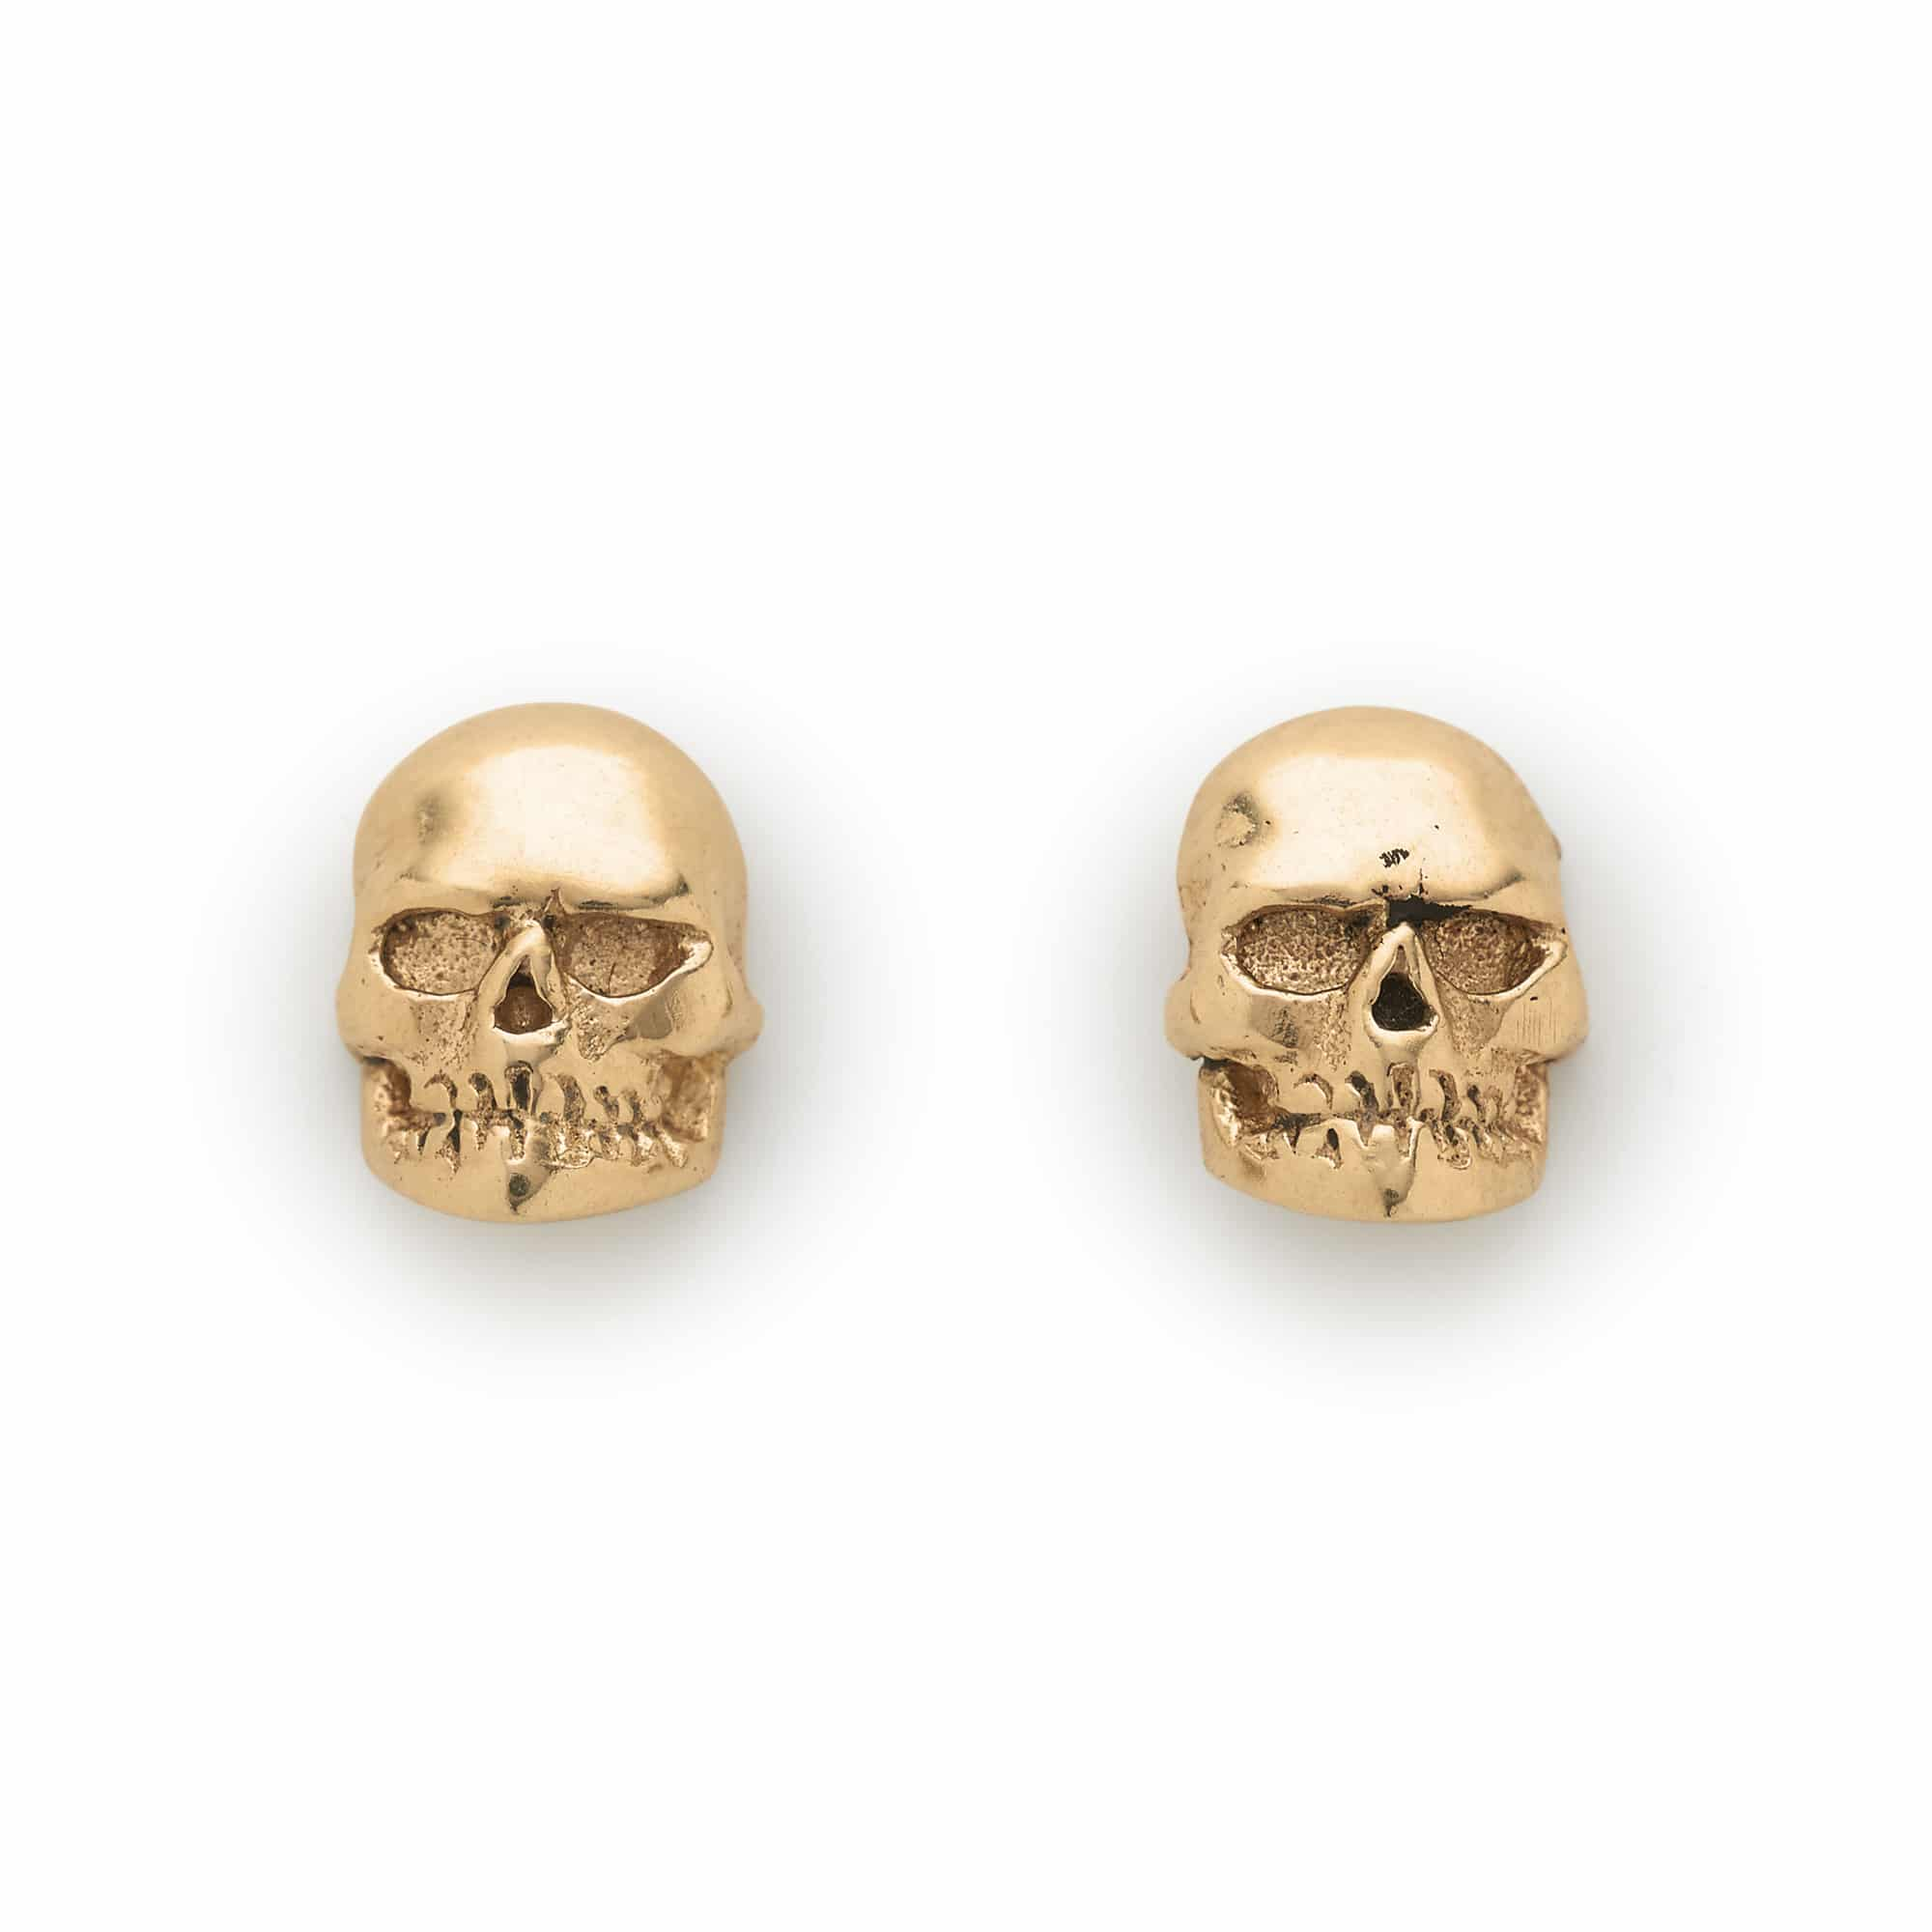 9CT Yellow Gold Skull Ear Studs – The Great Frog